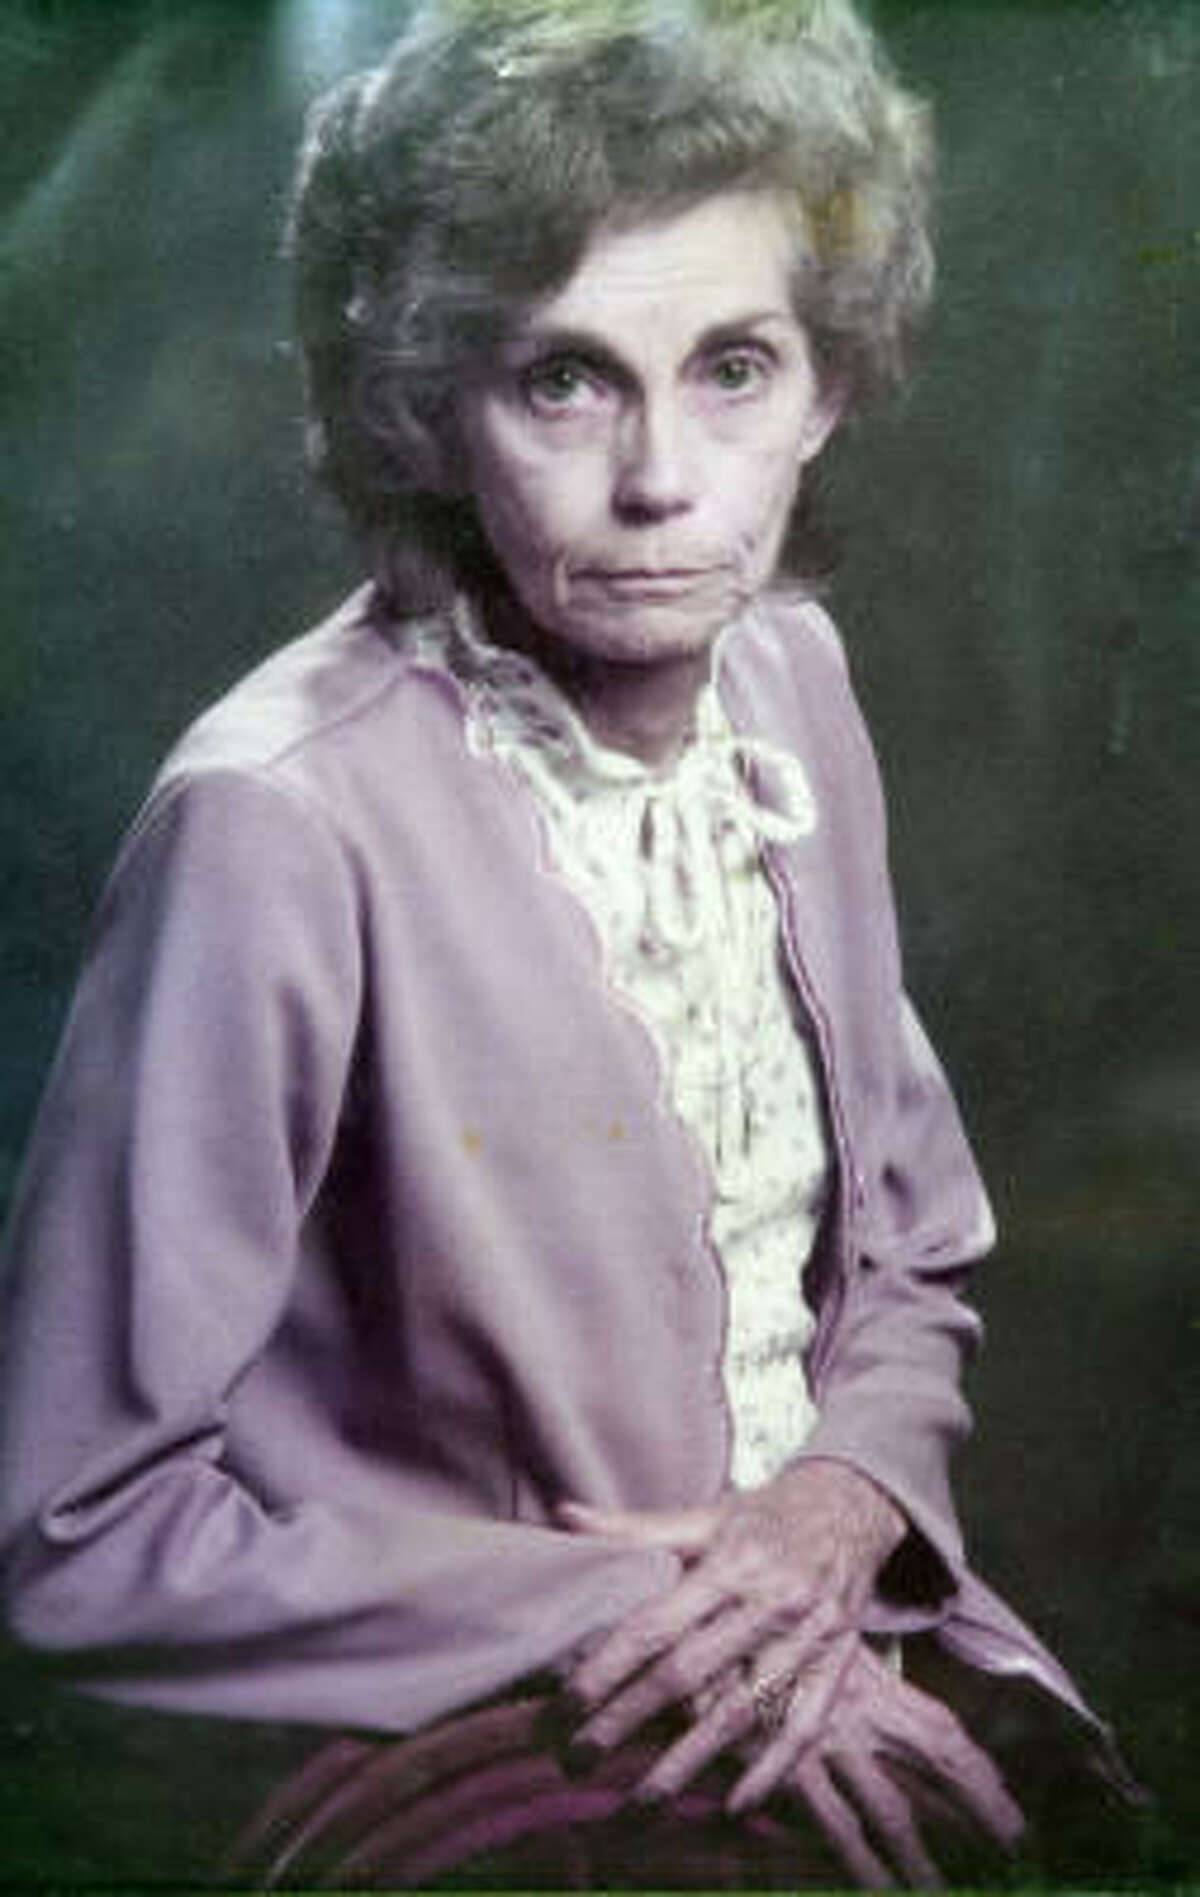 Edna M. Franklin, 72, was killed in 1994. A man on death row denies involvement.